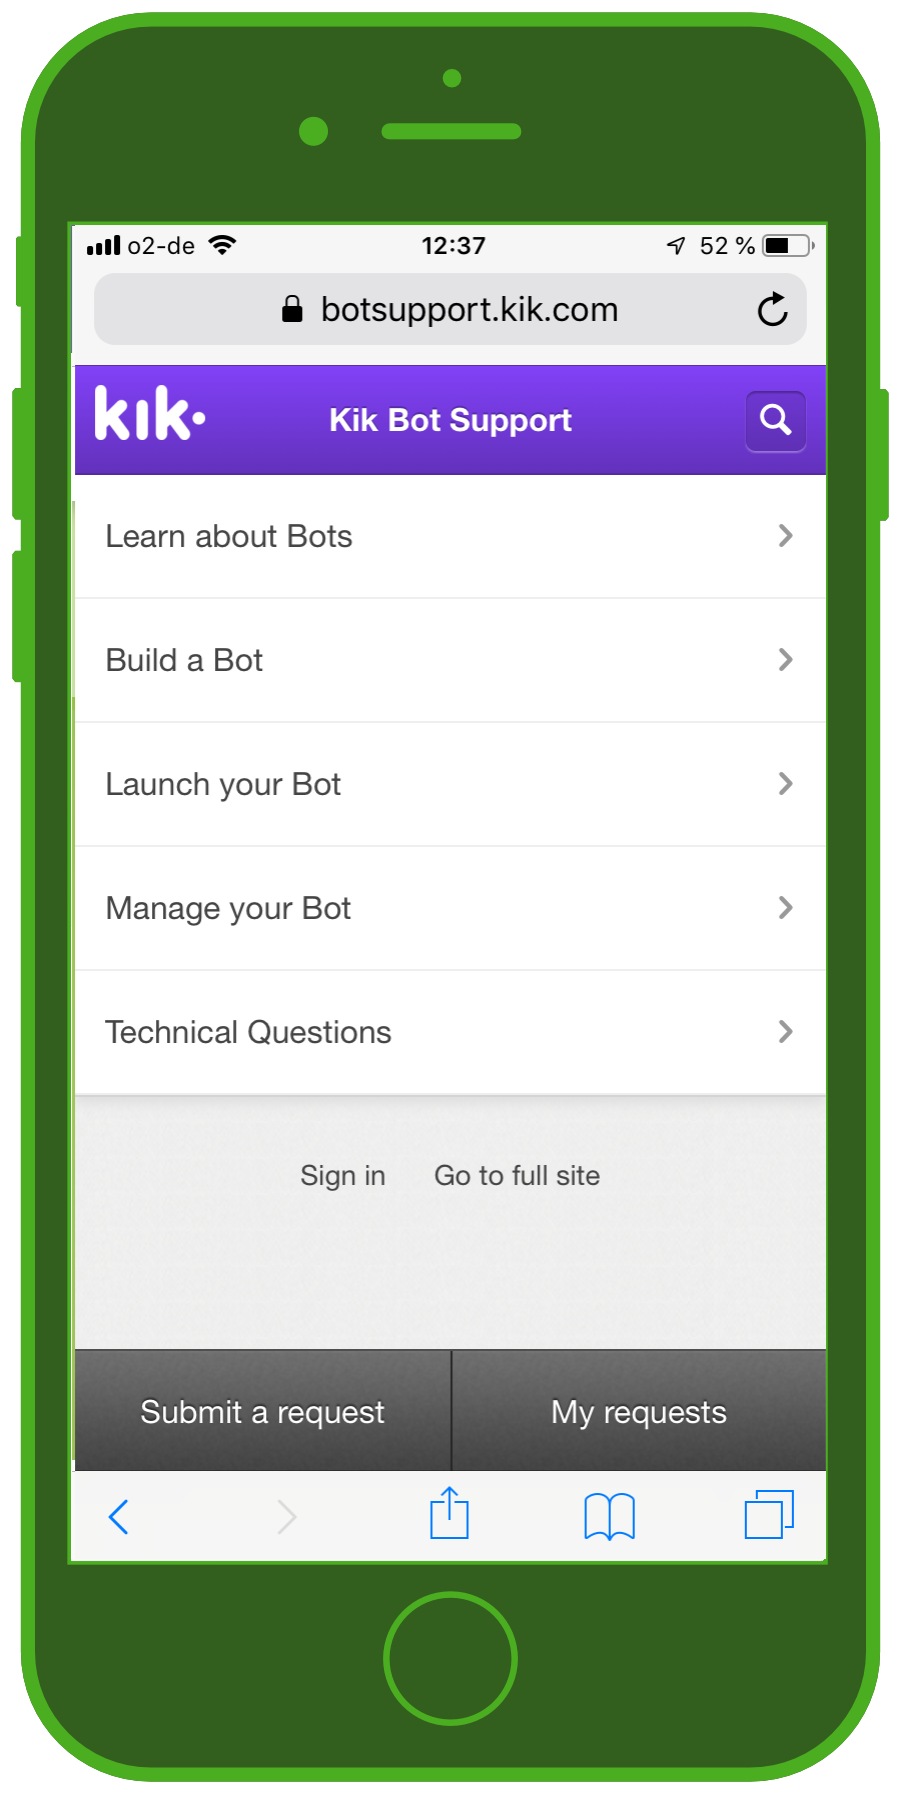 kik messenger discover bot support